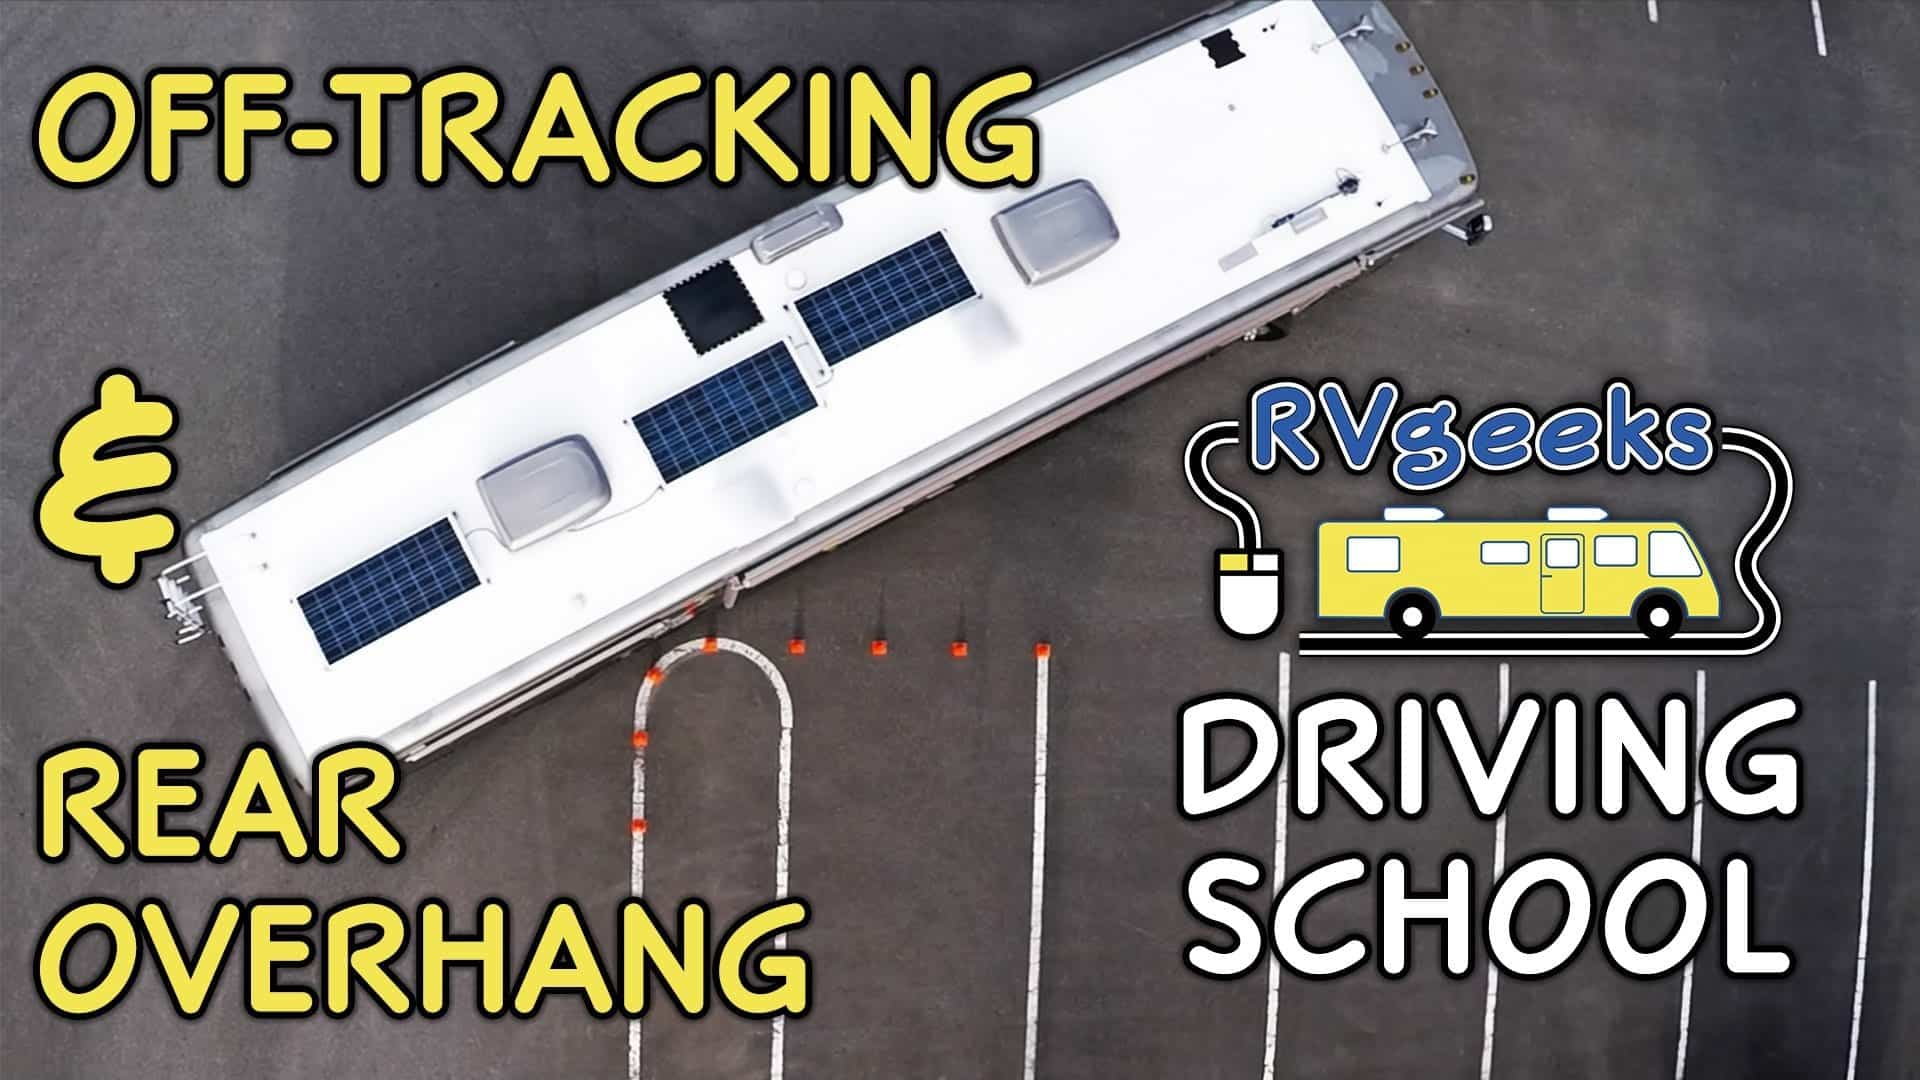 How to Drive an RV: Off-Tracking & Rear Overhang